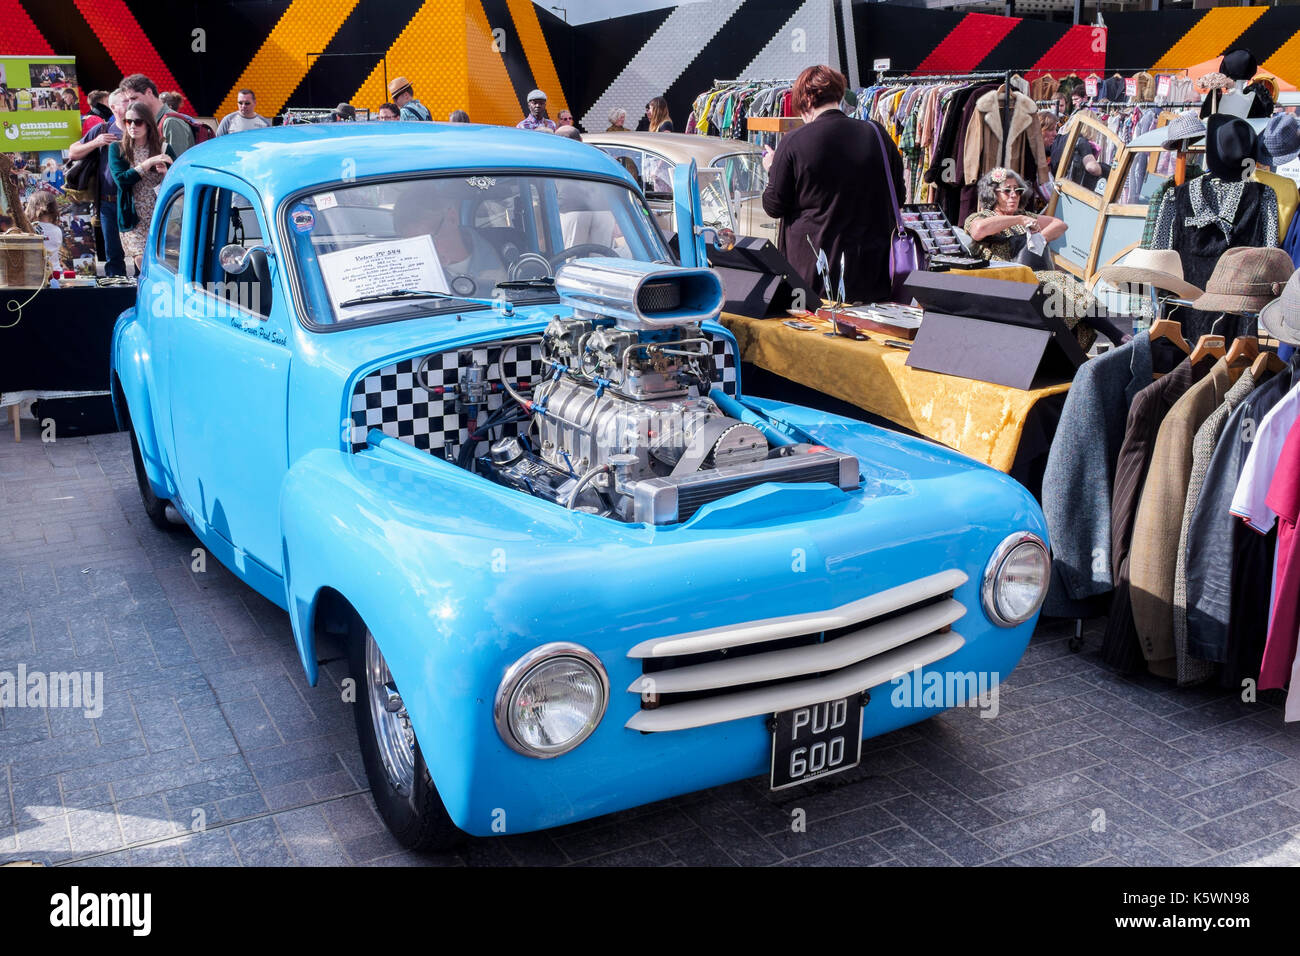 Classic Car Boot Sale Stock Photos & Classic Car Boot Sale Stock ...